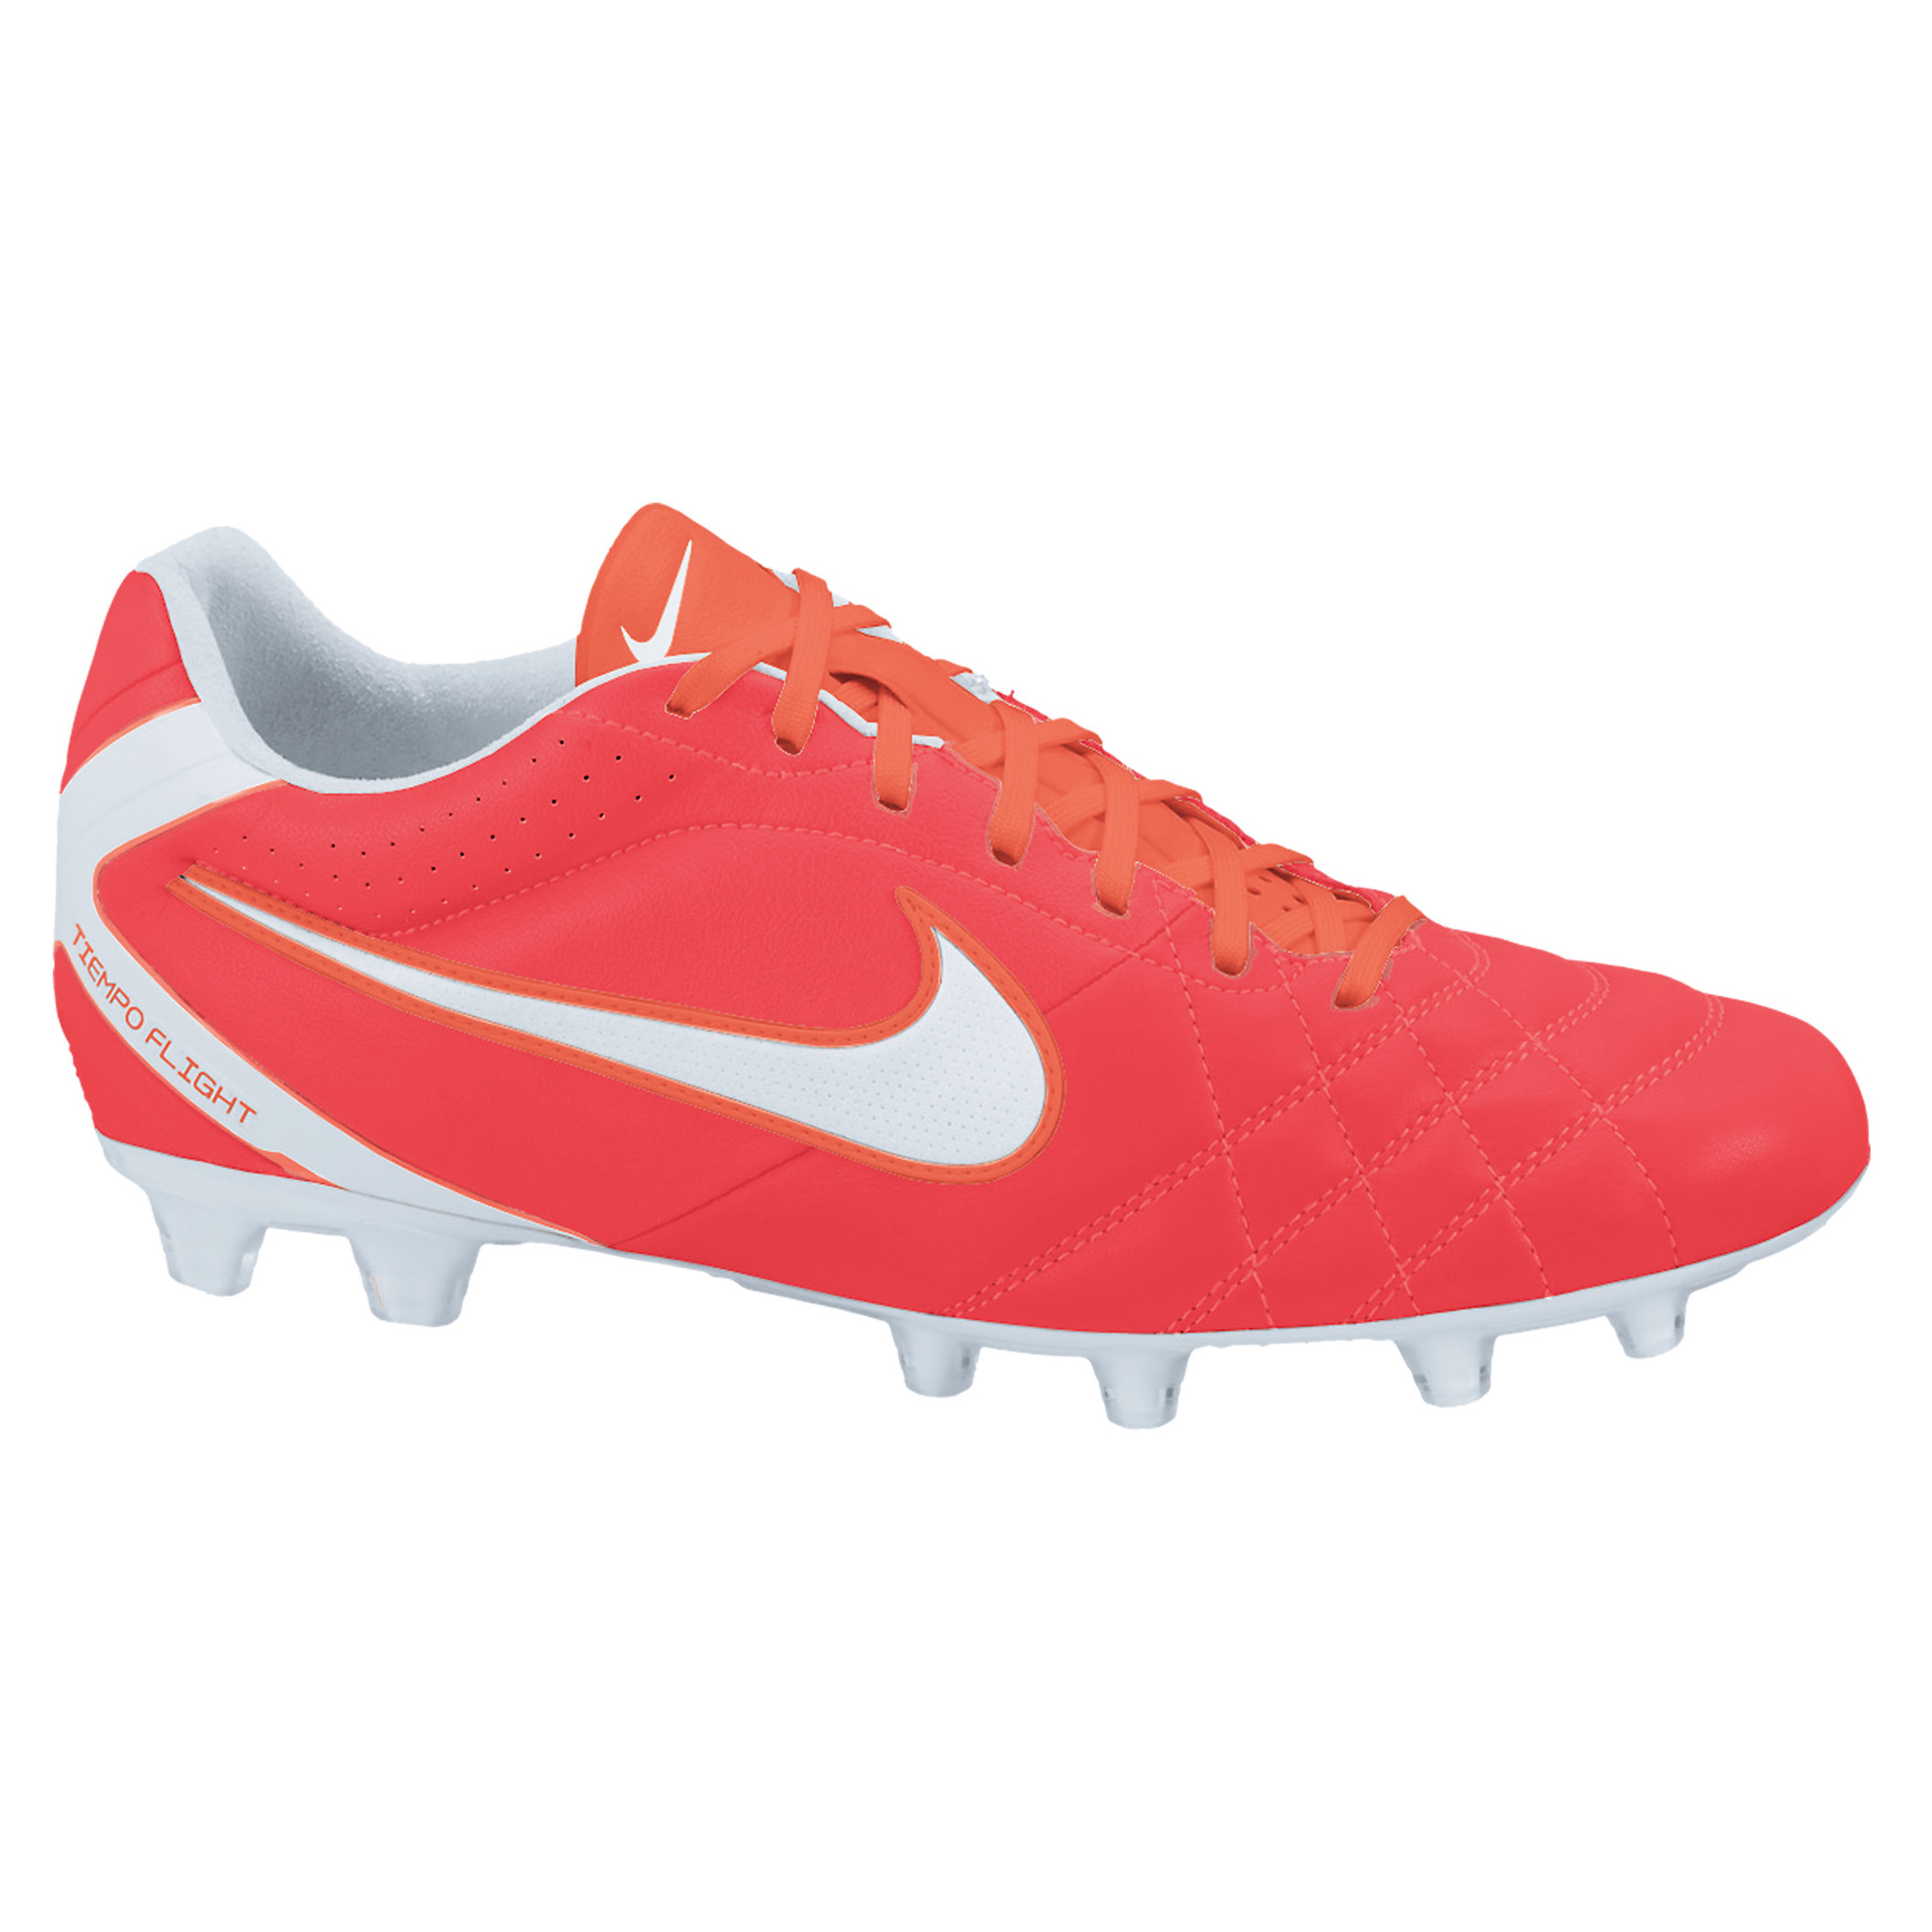 Nike Tiempo Flight Firm Ground Football Boots - Sunburst/White/Total Crimson